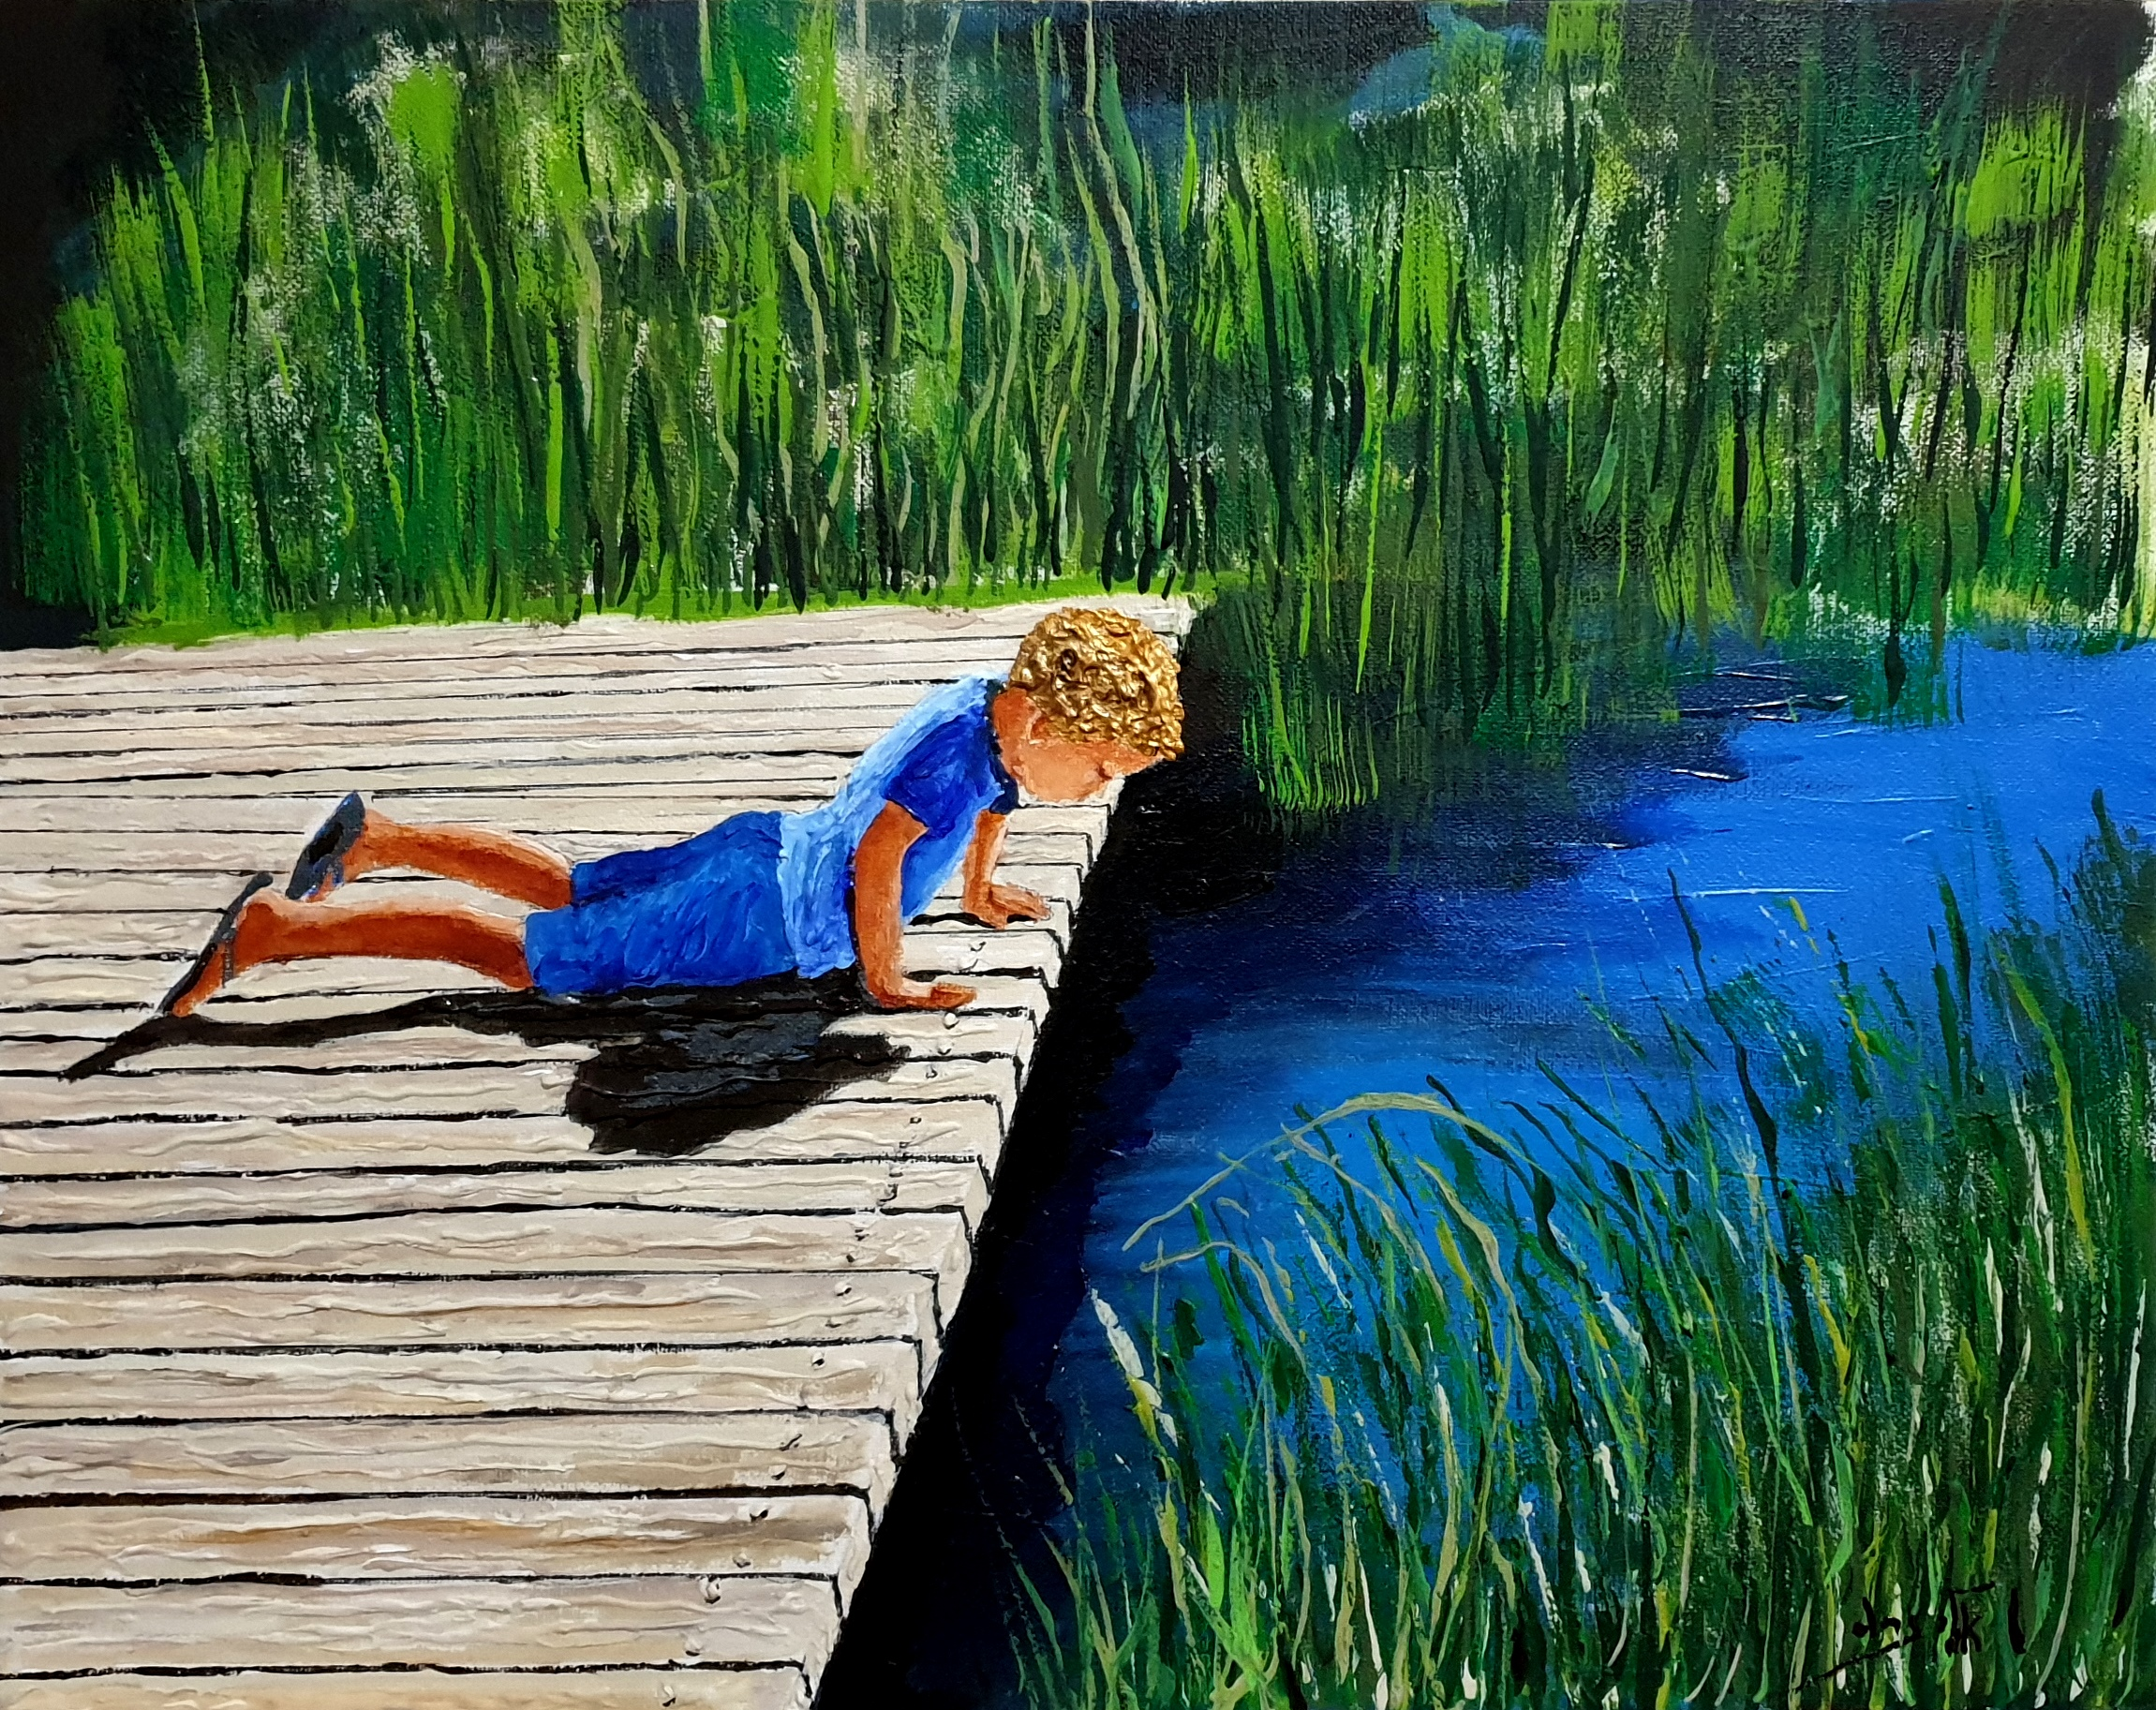 The hidden lake, deep and clear - Acryli